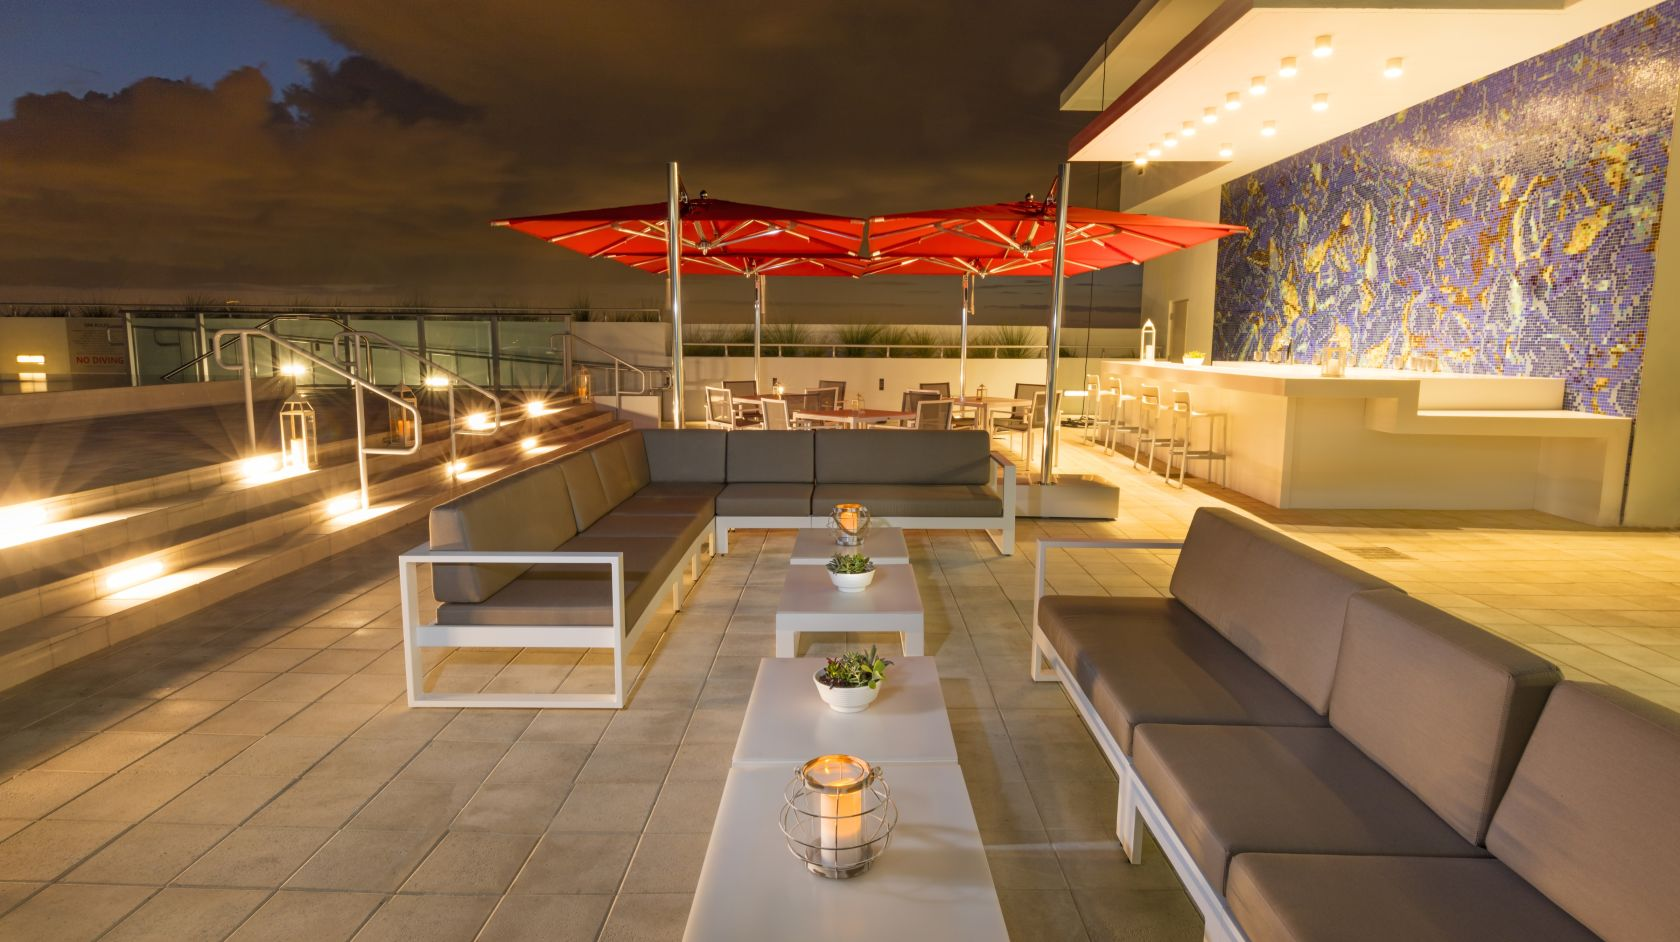 Novotel Miami Brickell hotel rooftop at night